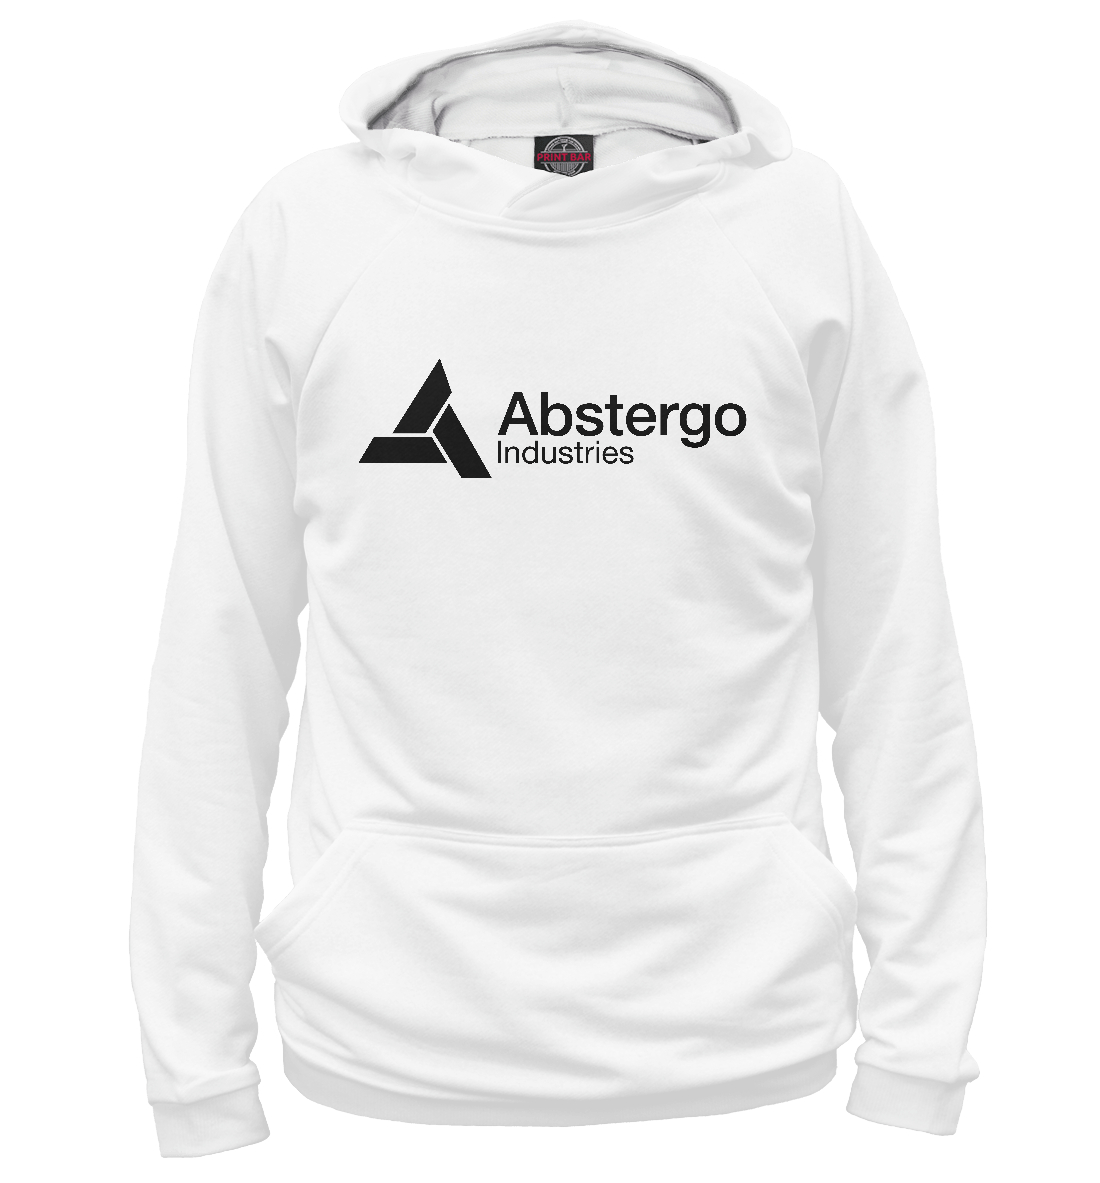 Abstergo Industries